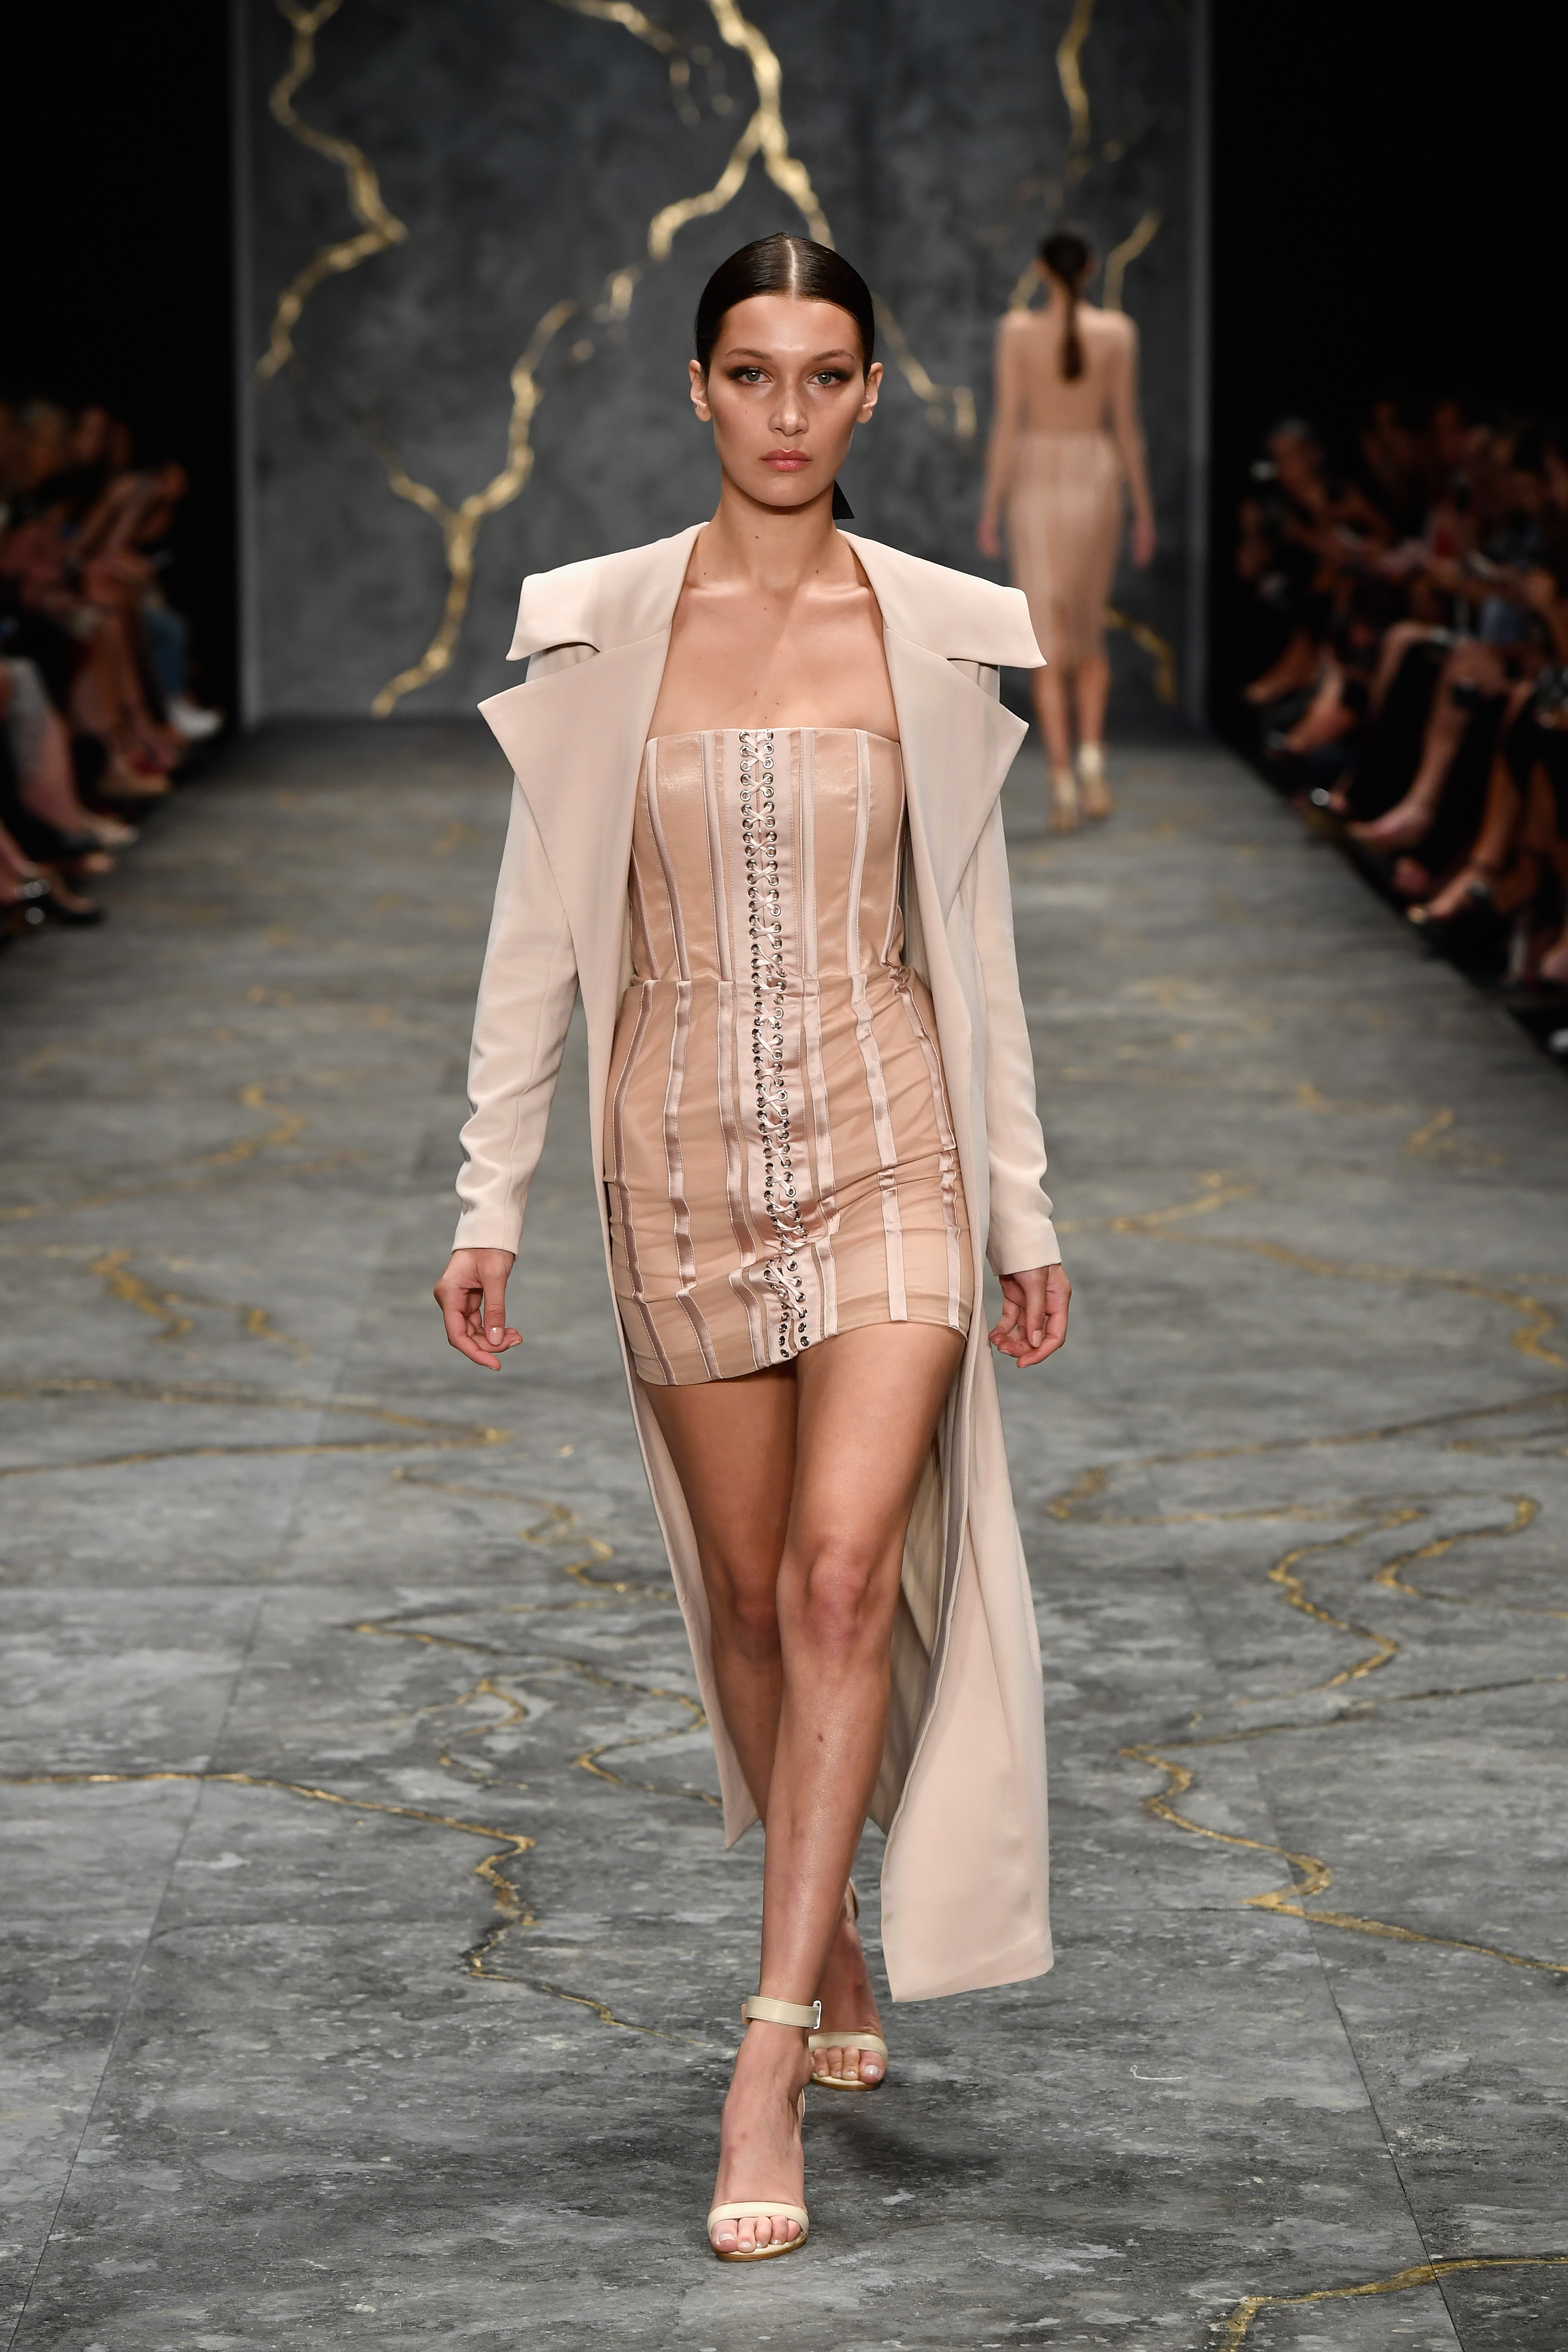 SYDNEY, AUSTRALIA - MAY 16: Model Bella Hadid walks the runway during the Misha Collection show at Mercedes-Benz...